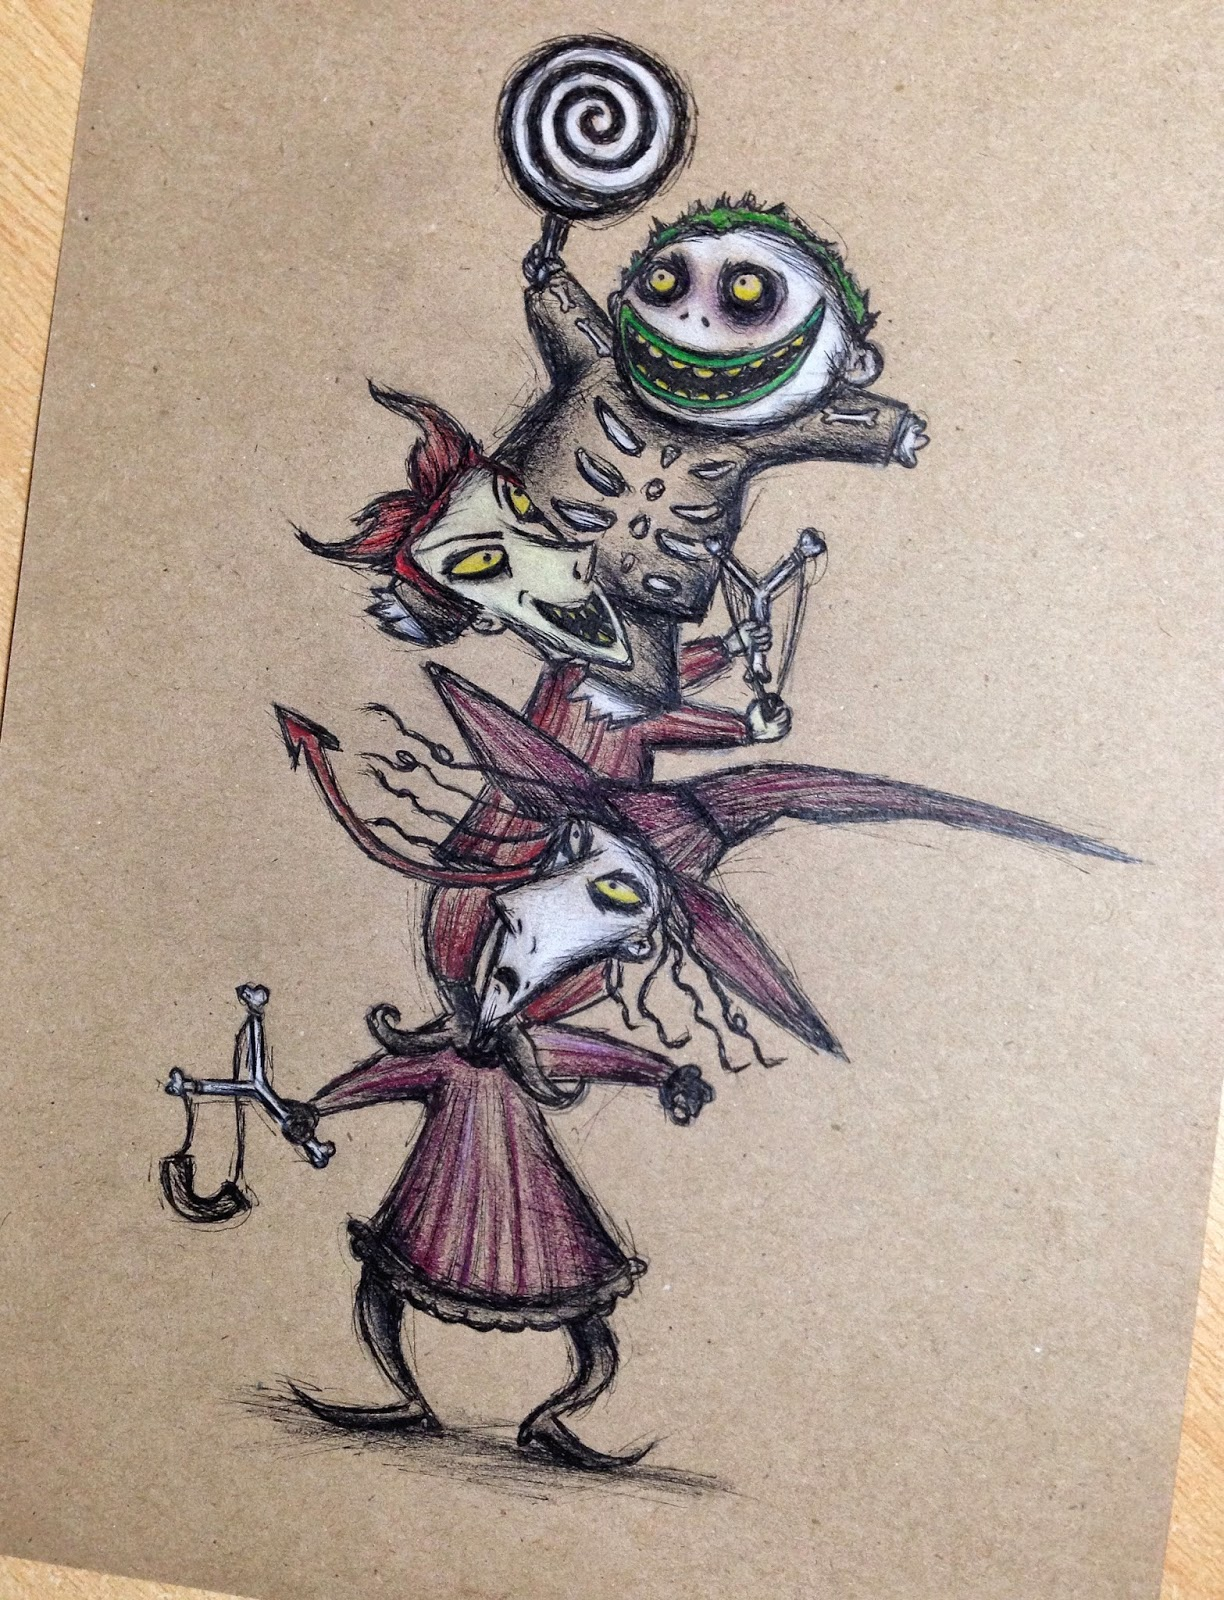 Nightmare Before Christmas Illustration.Scudge The Nightmare Before Christmas Illustrations Step